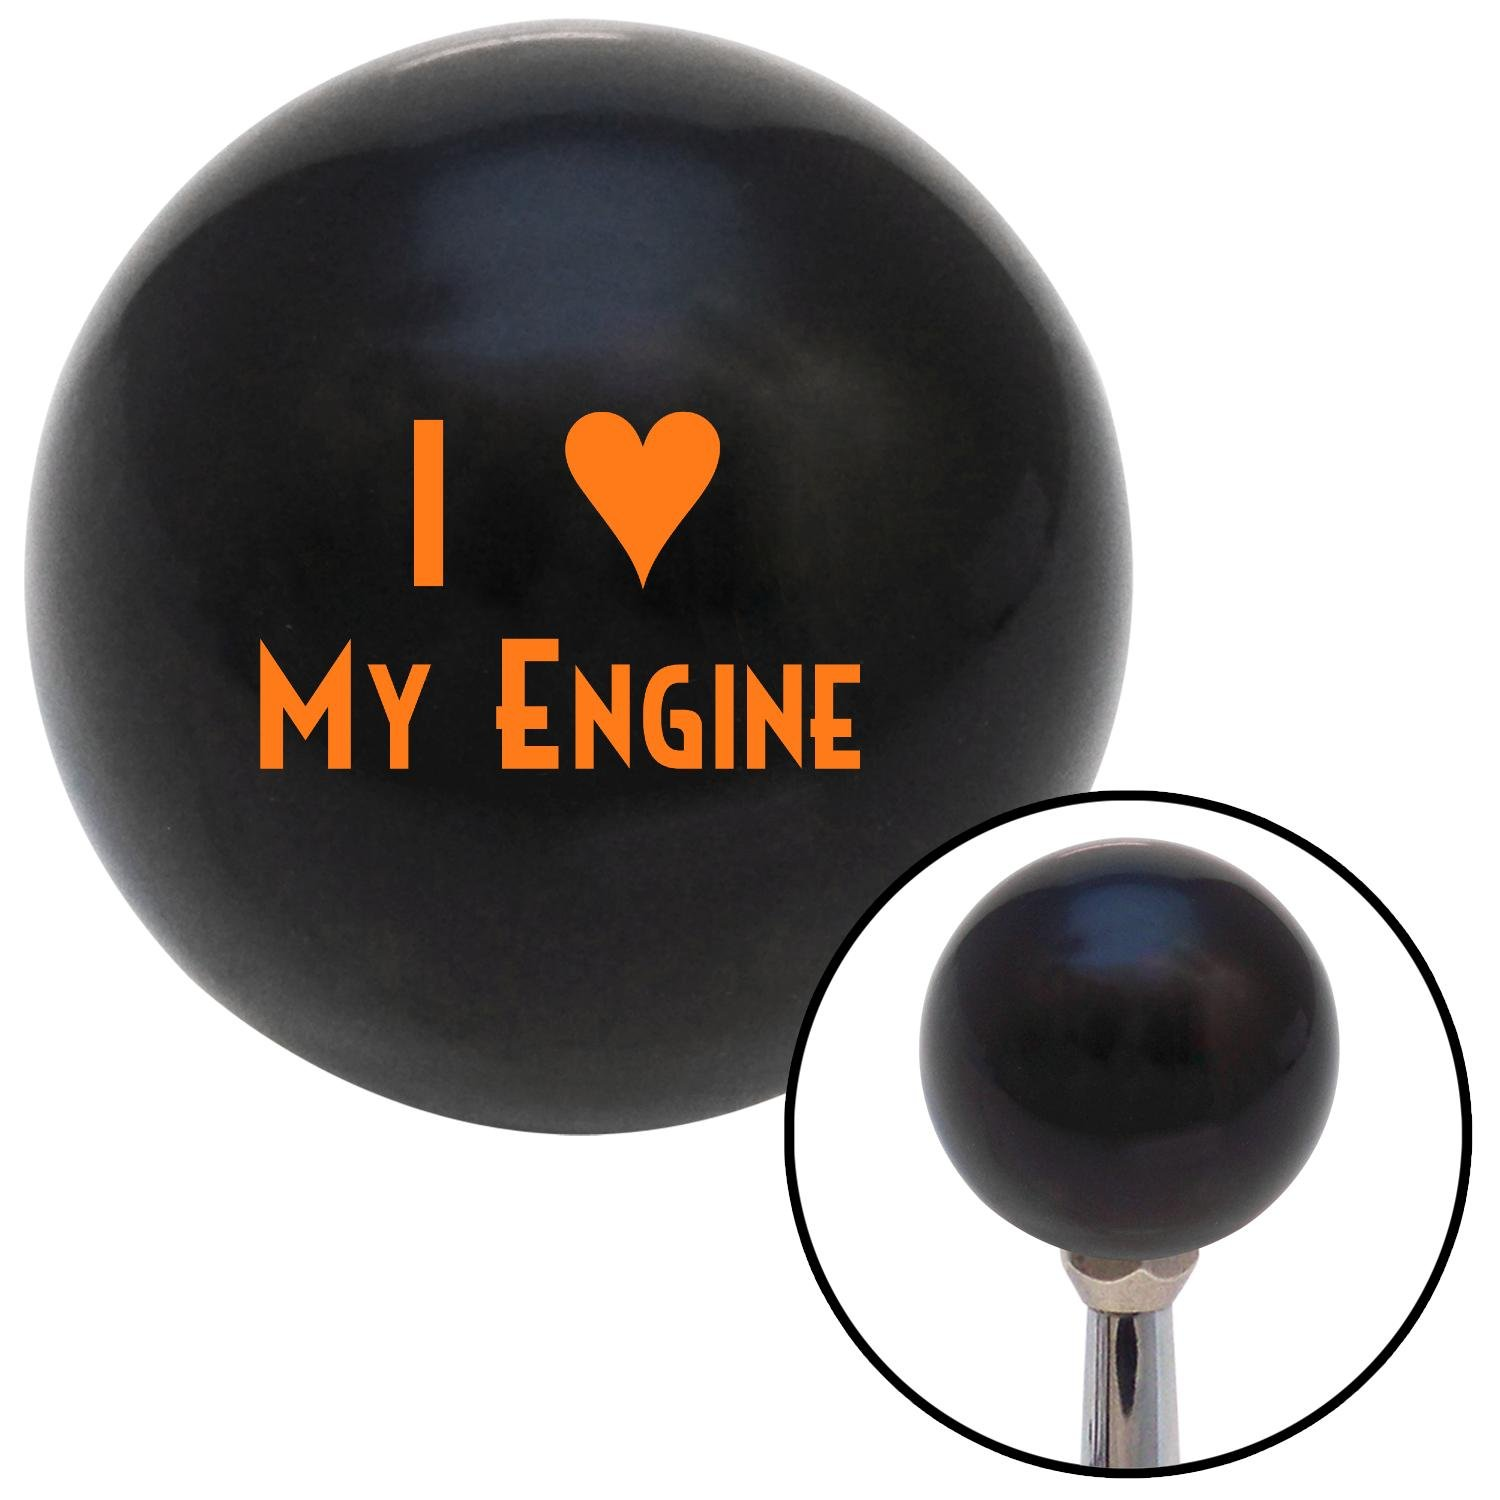 Orange I 3 My Engine American Shifter 105690 Black Shift Knob with M16 x 1.5 Insert